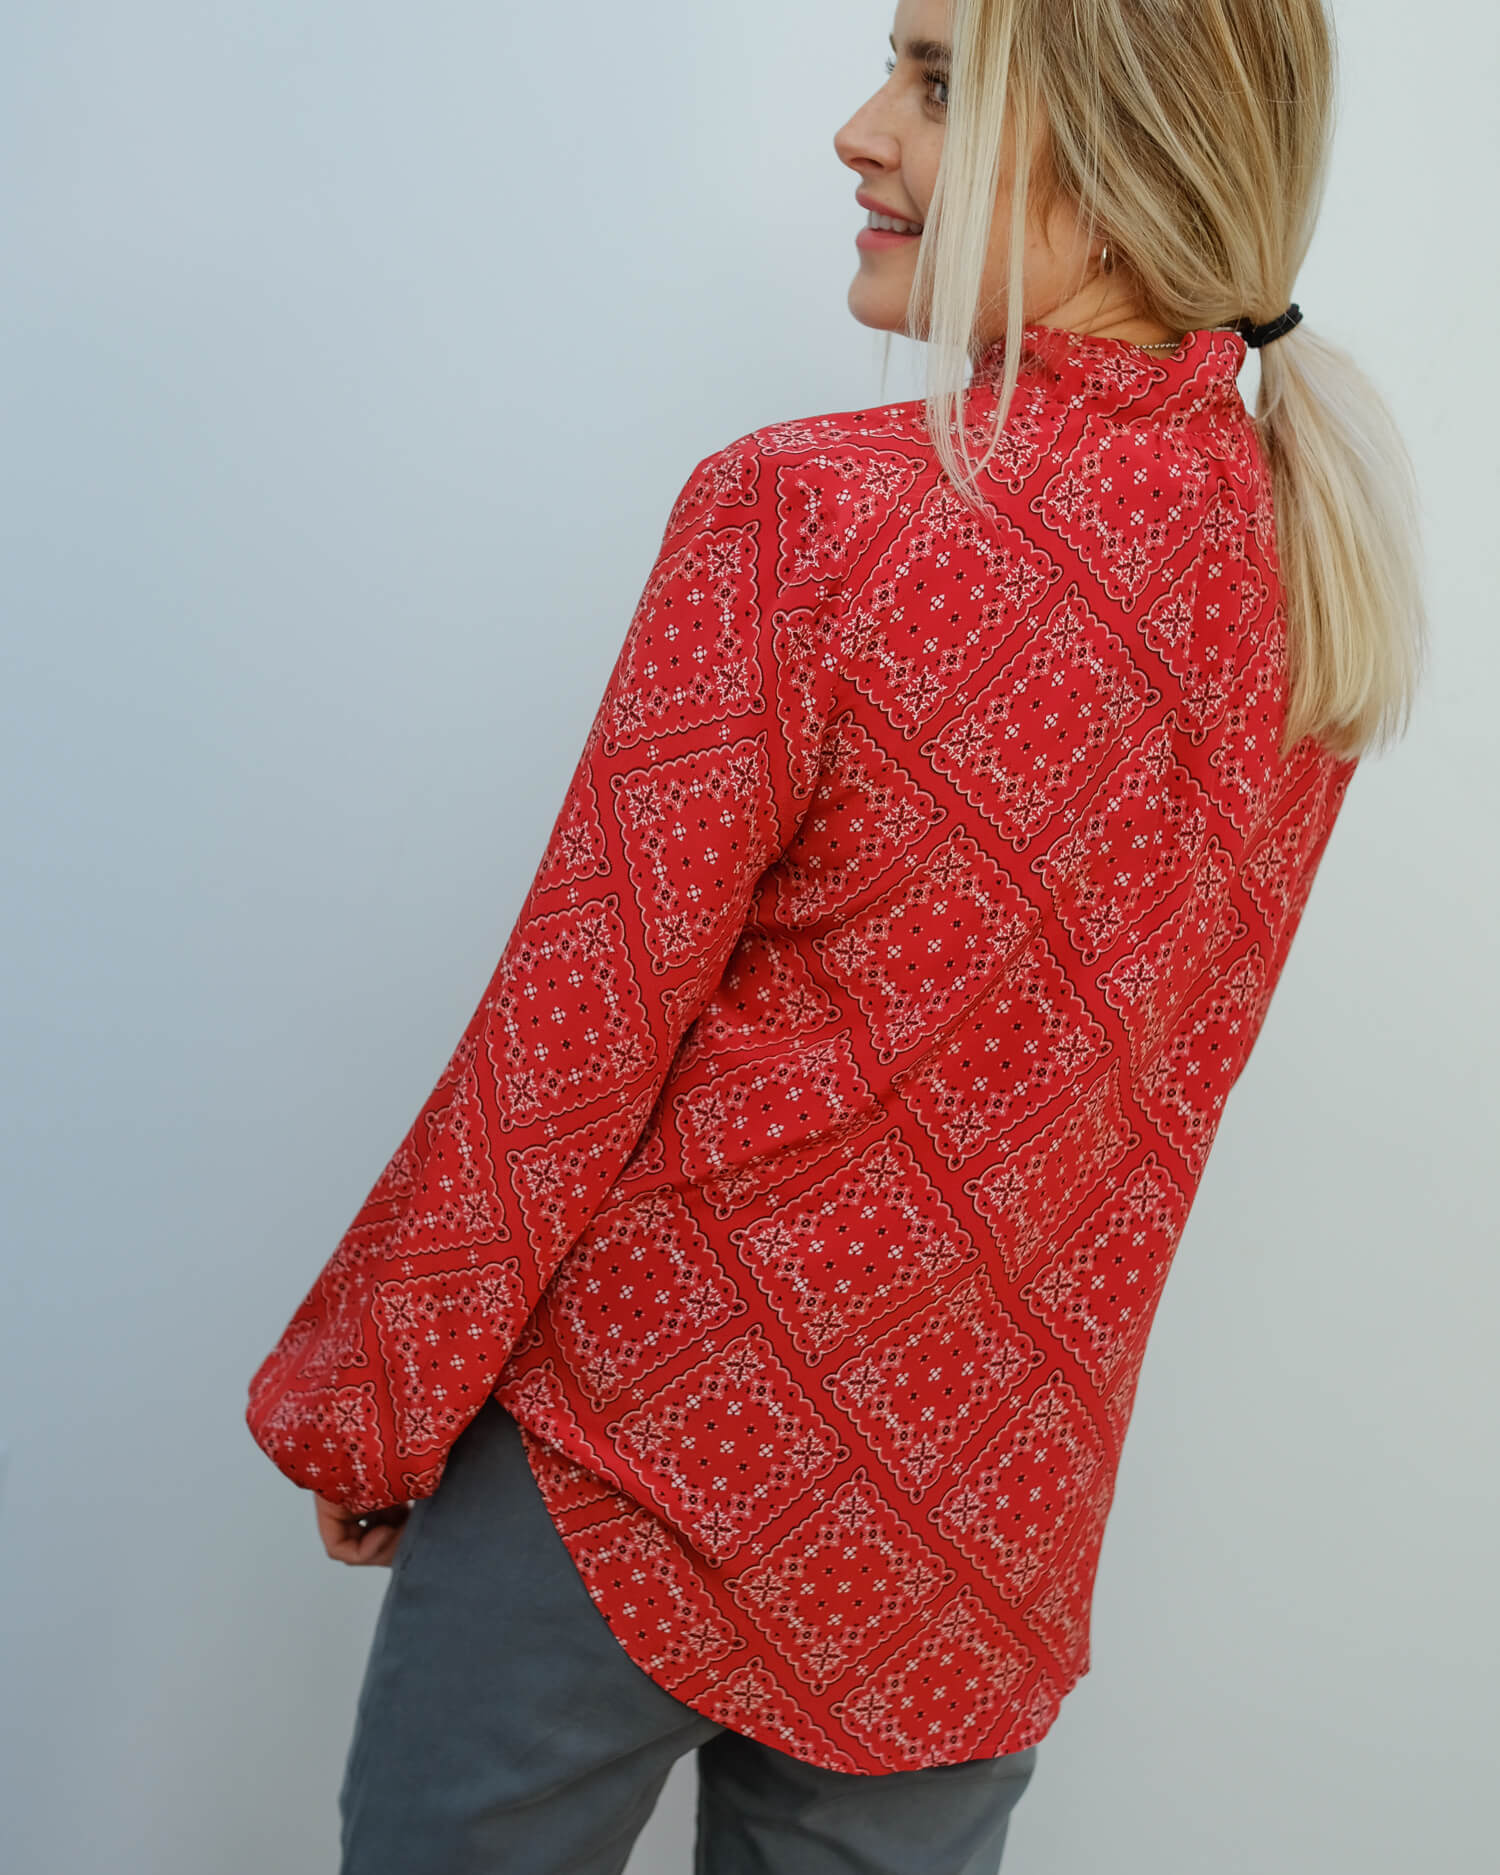 RIXO Moss in scarf floral red